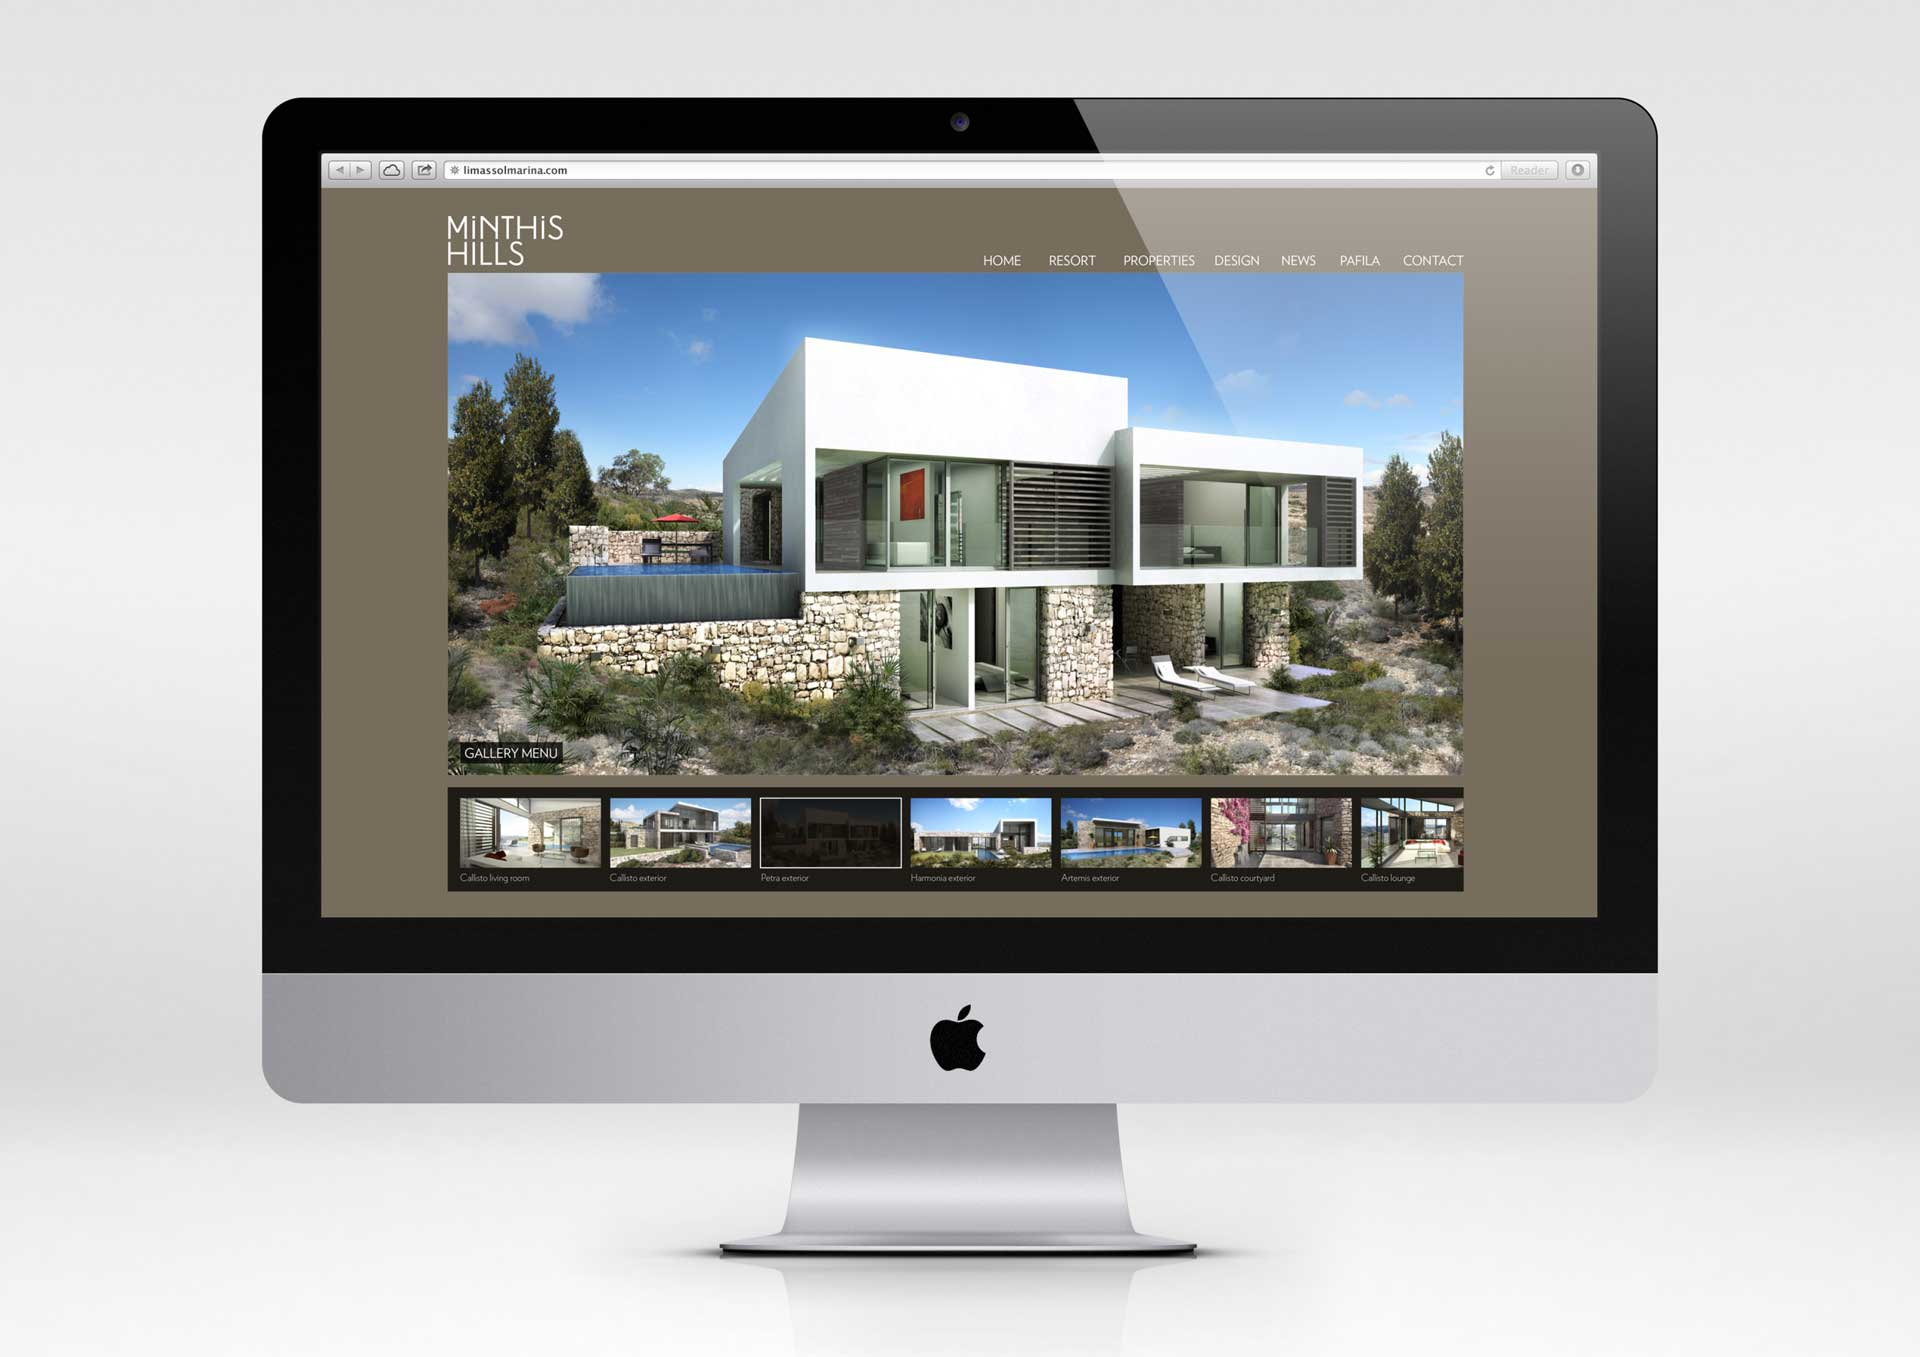 minthis-hills-property-website-5